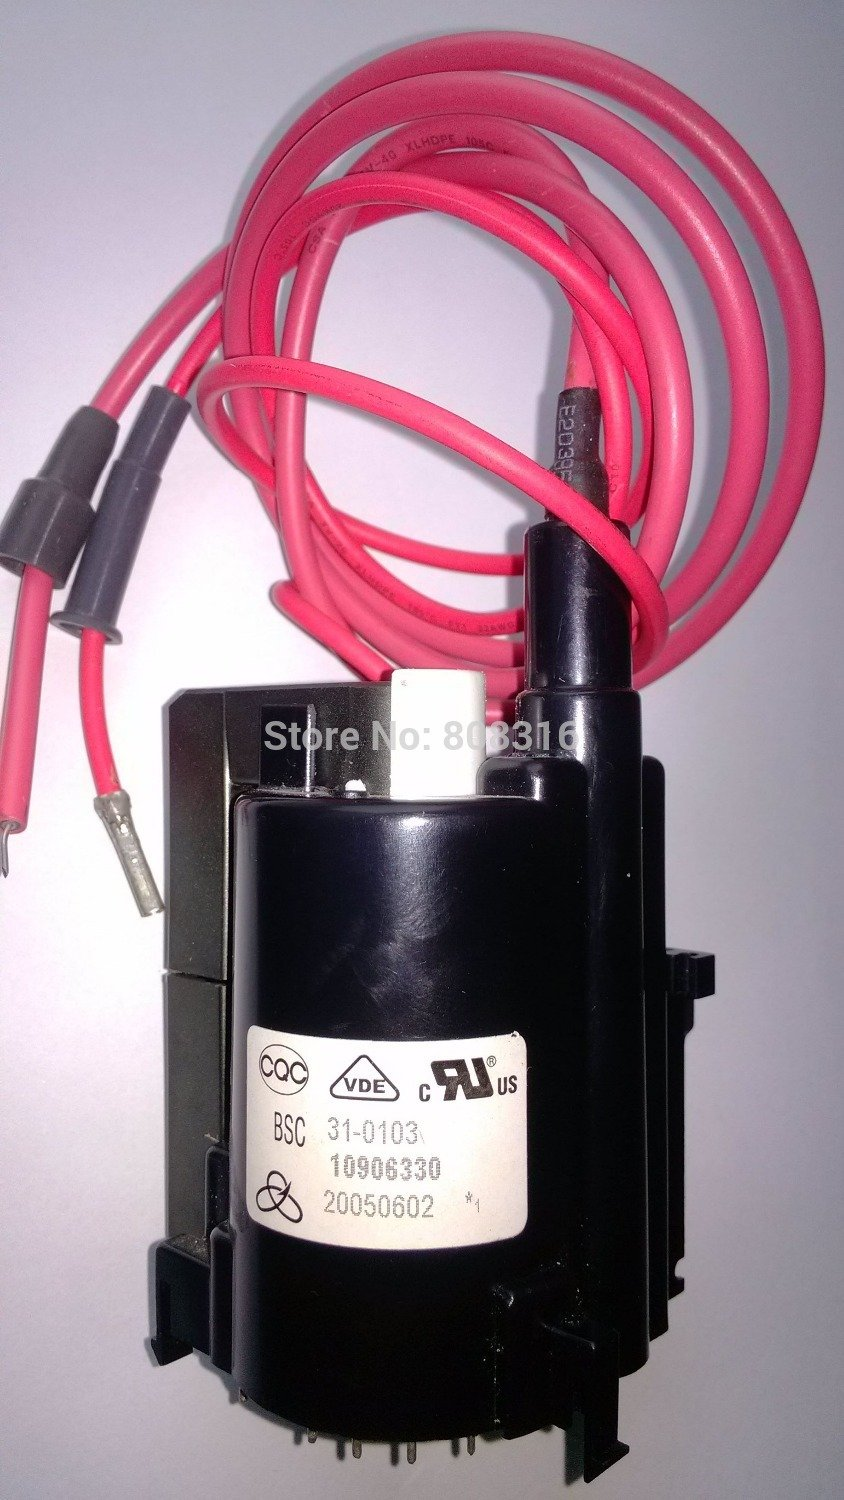 RCA HD52W59 BSC31-0103 37-BSC310-10301 10906330 flback transformer for RCA THOMSON OR TCL TV